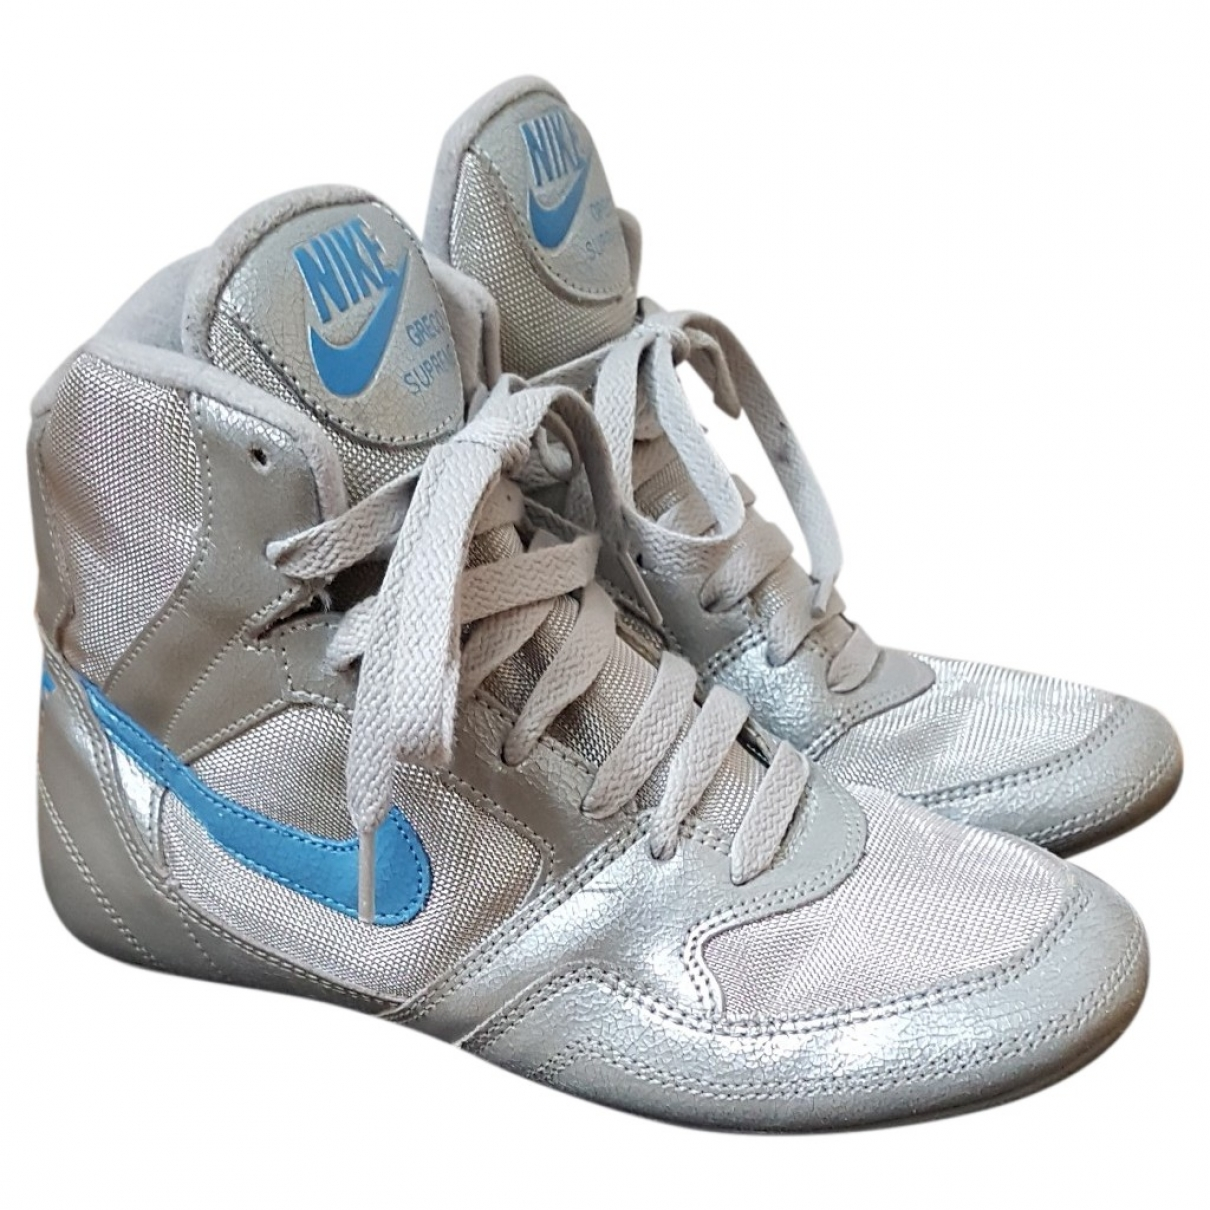 Nike \N Silver Leather Trainers for Women 38.5 EU